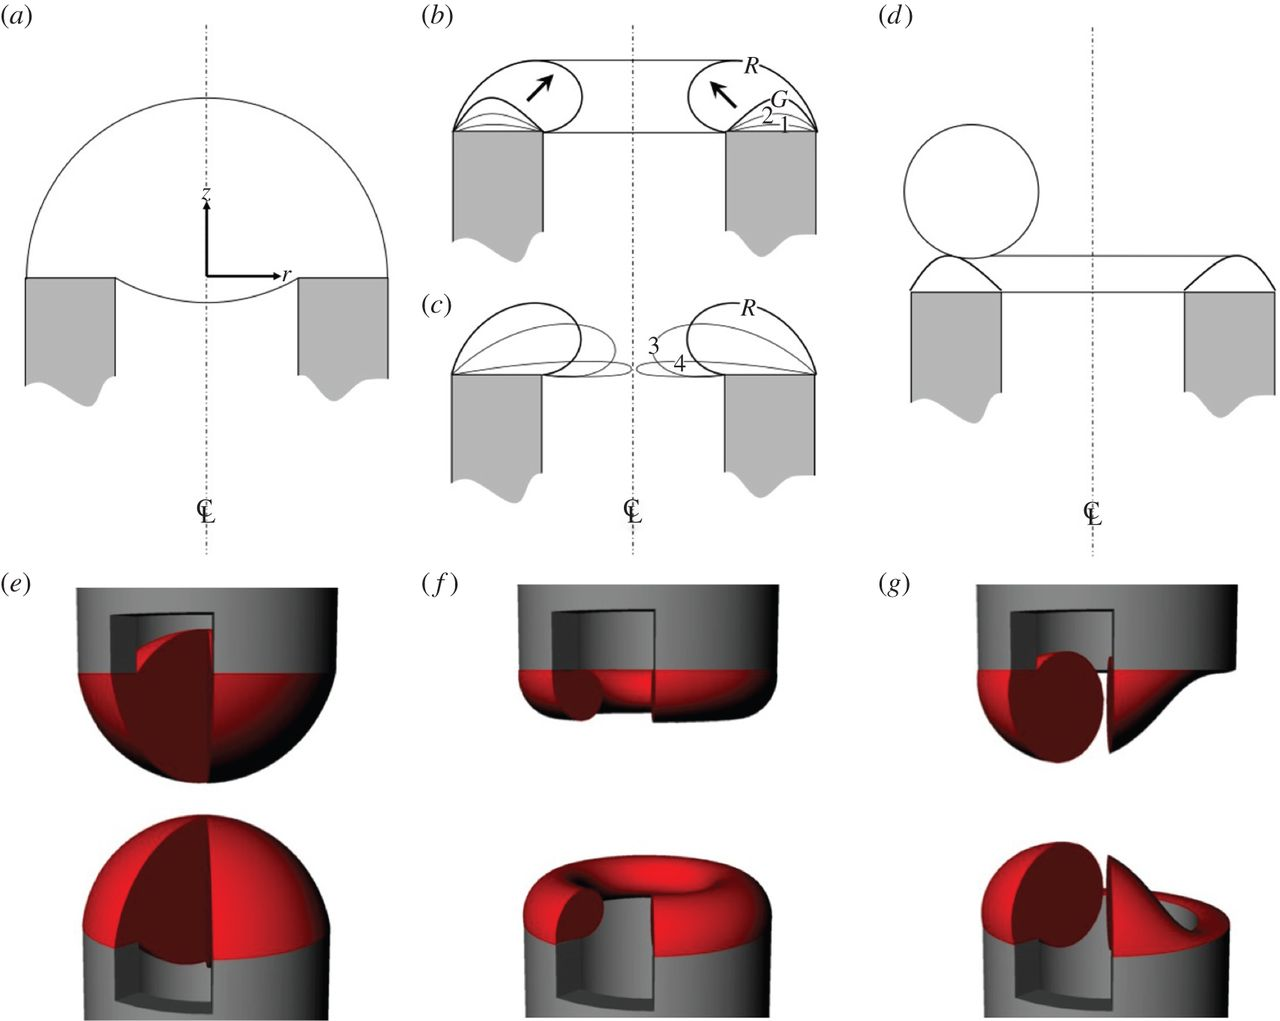 Tissue growth controlled by geometric boundary conditions: a.